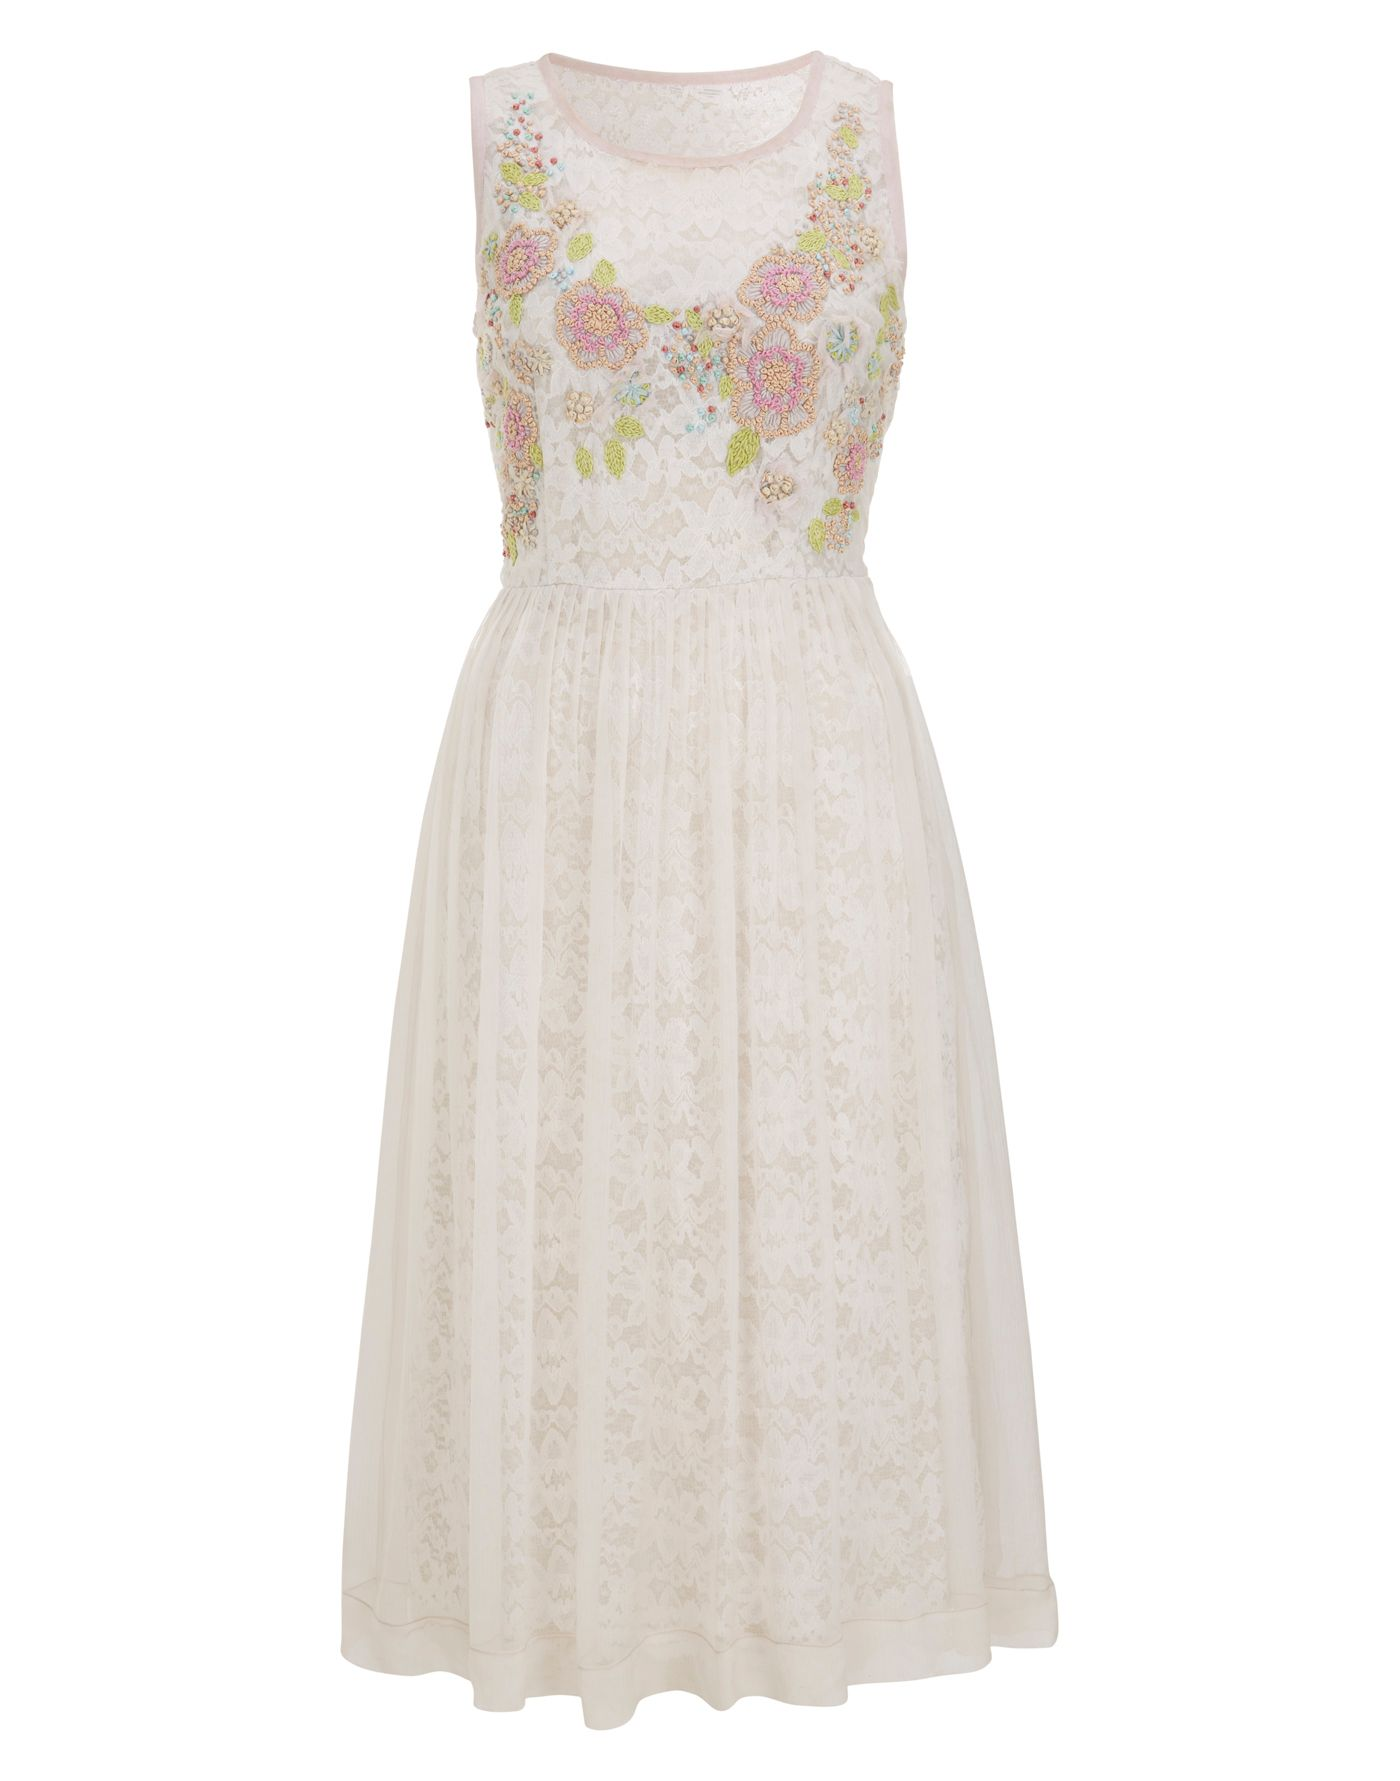 Lace lined embroidered dress